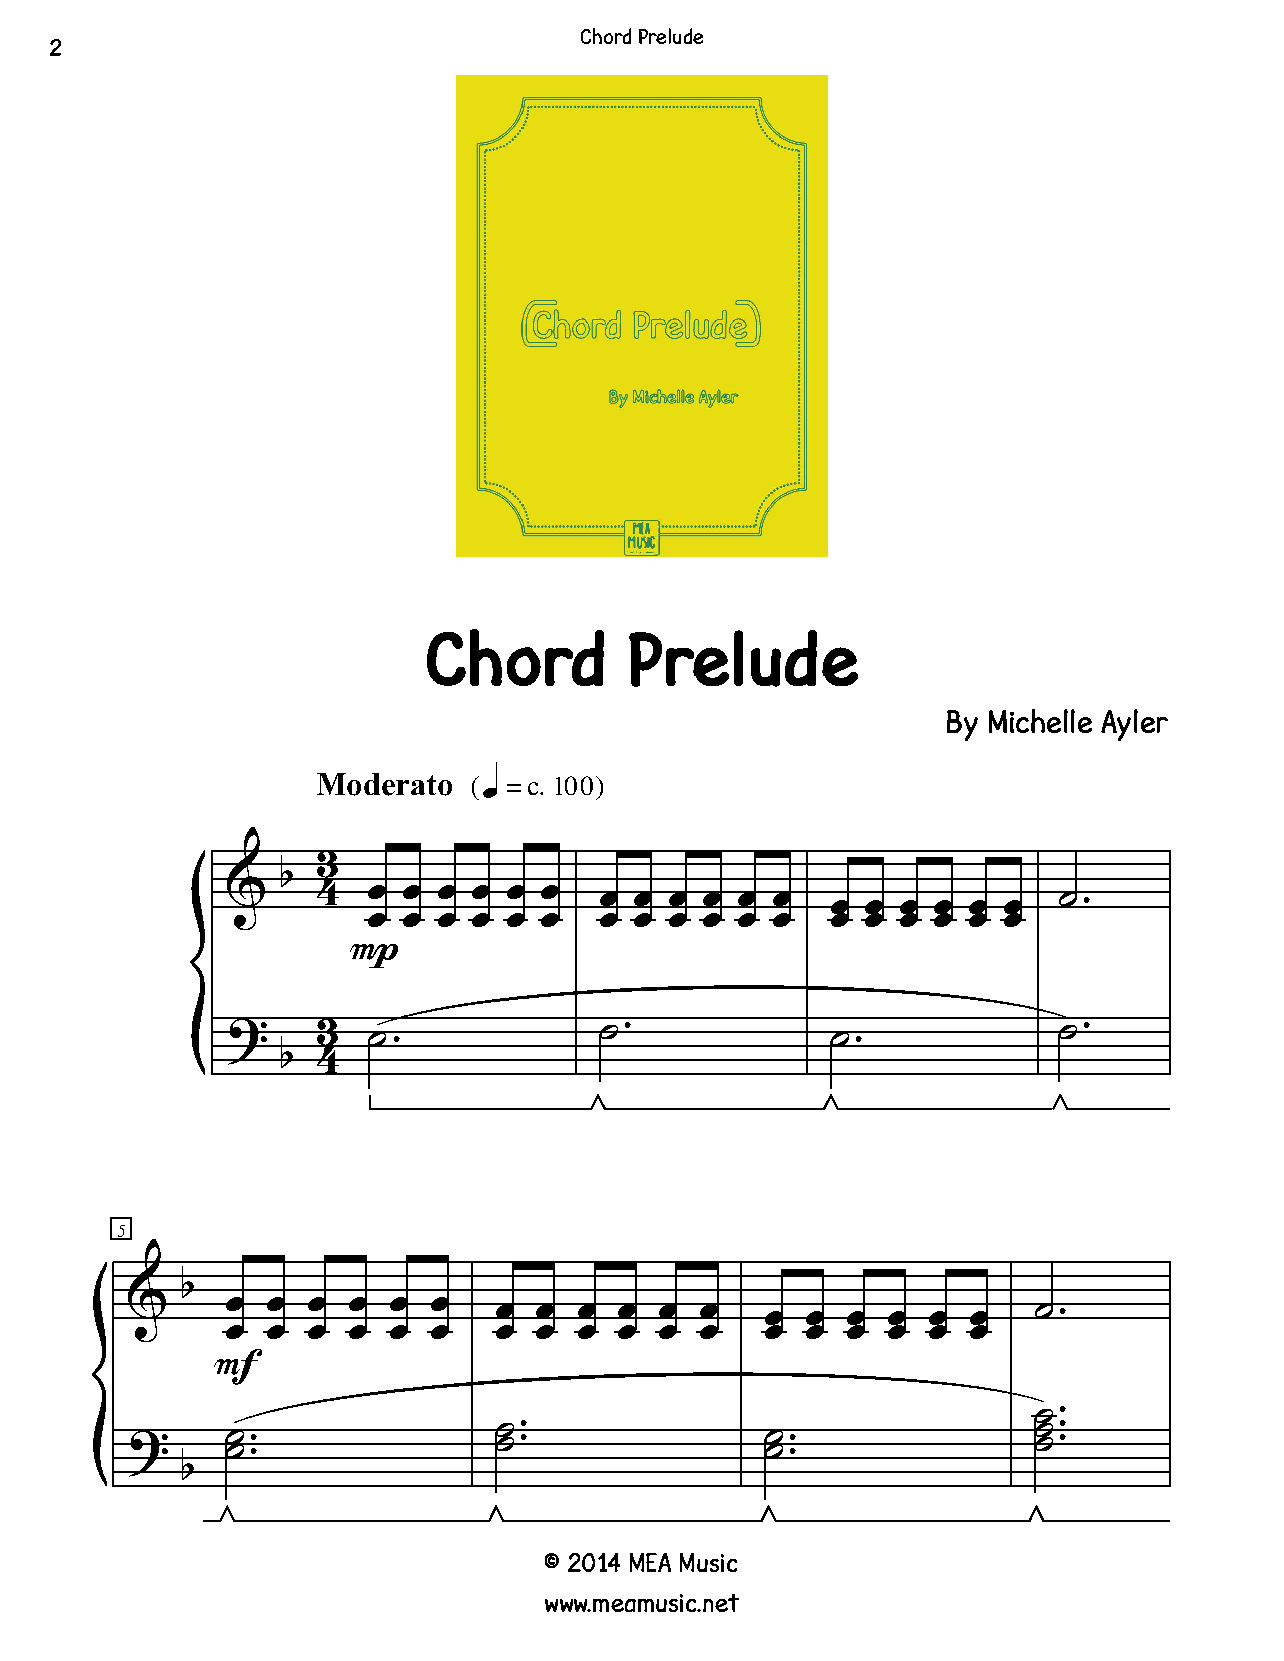 Chord Prelude Easy Piano Sheet Music